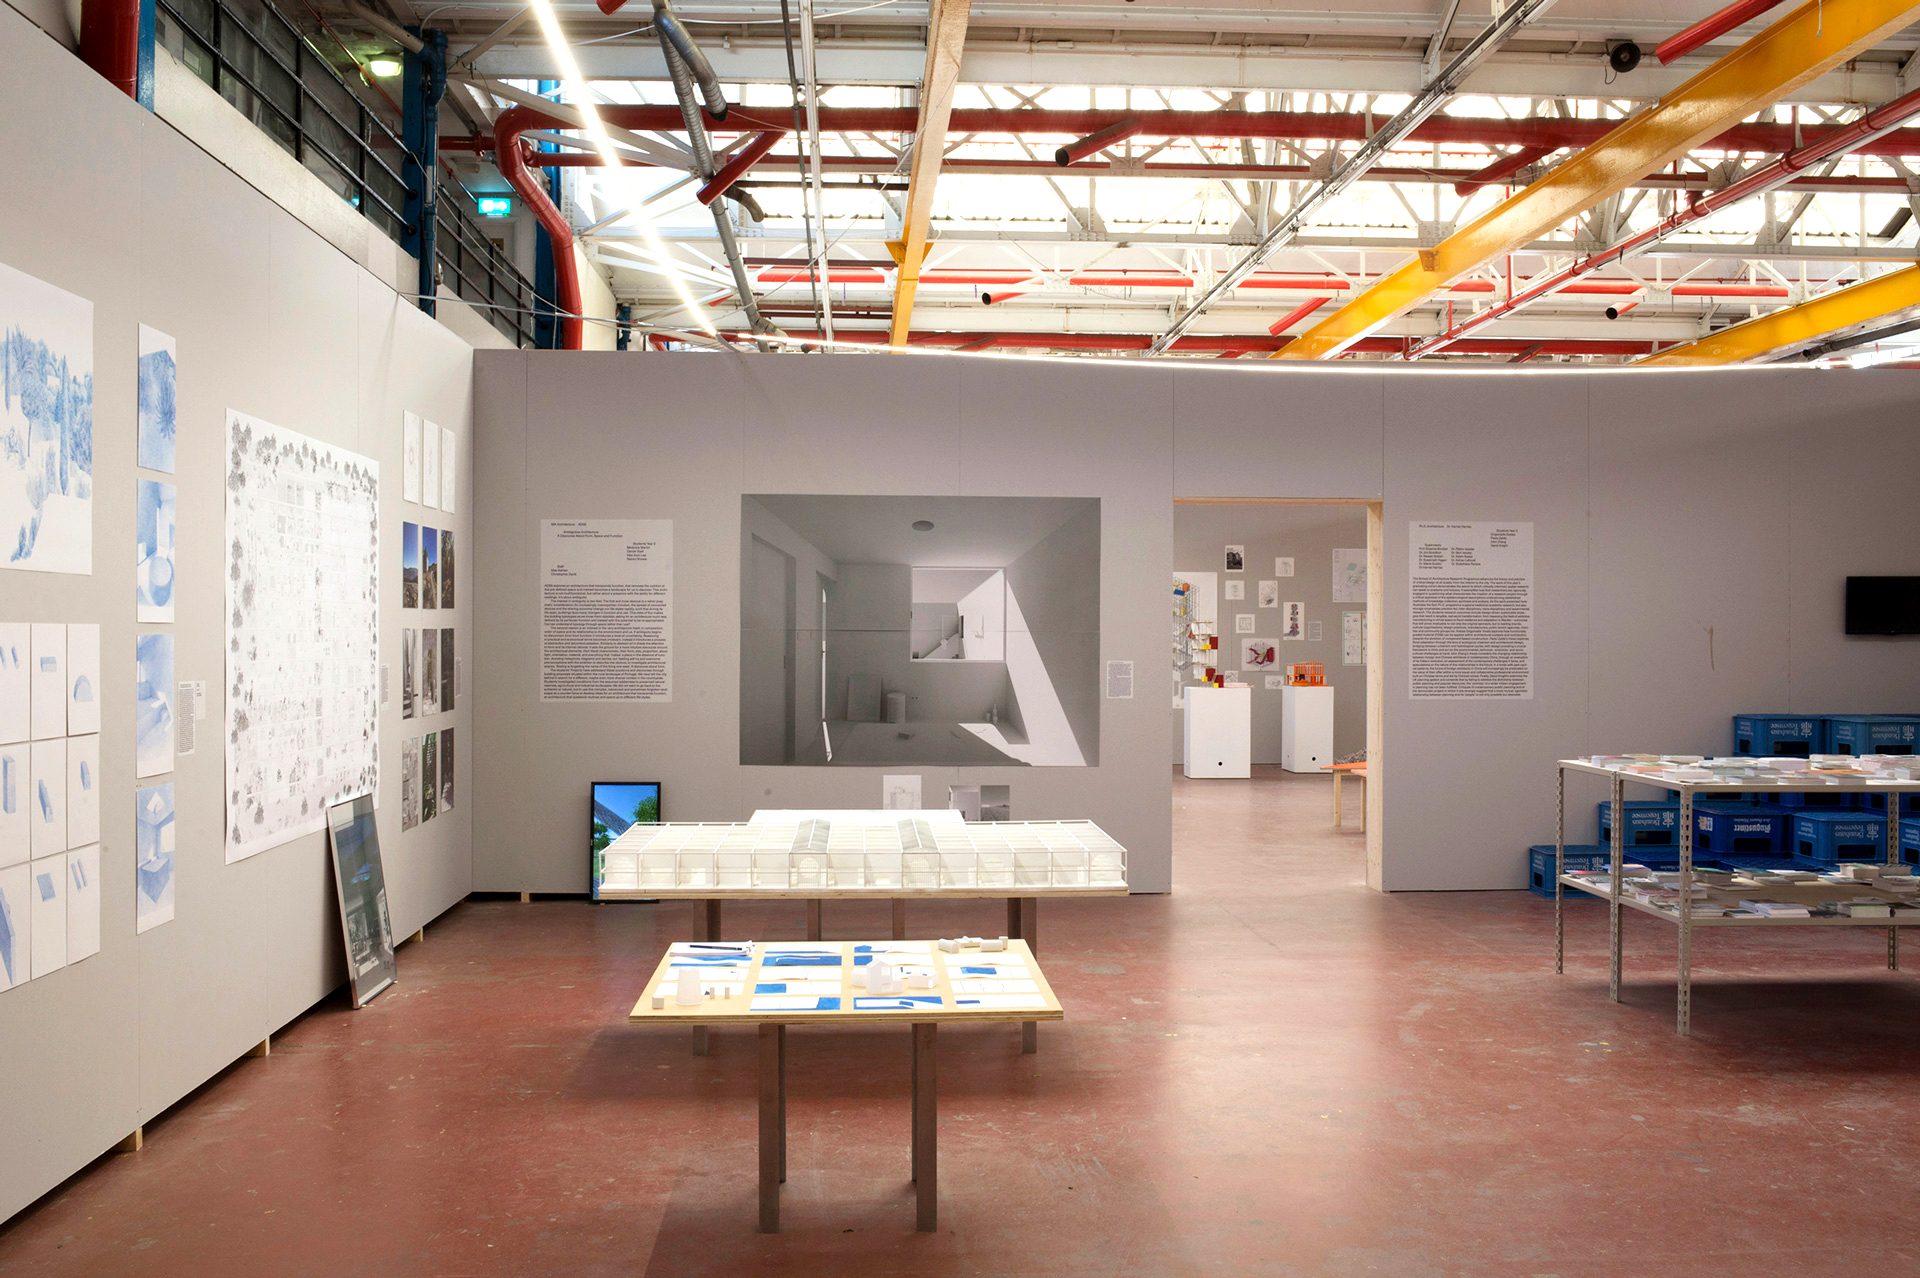 The Royal College of Art SoA Degree Show 2018 was an unmissable exhibition. Click to view how WFM helped support clients.